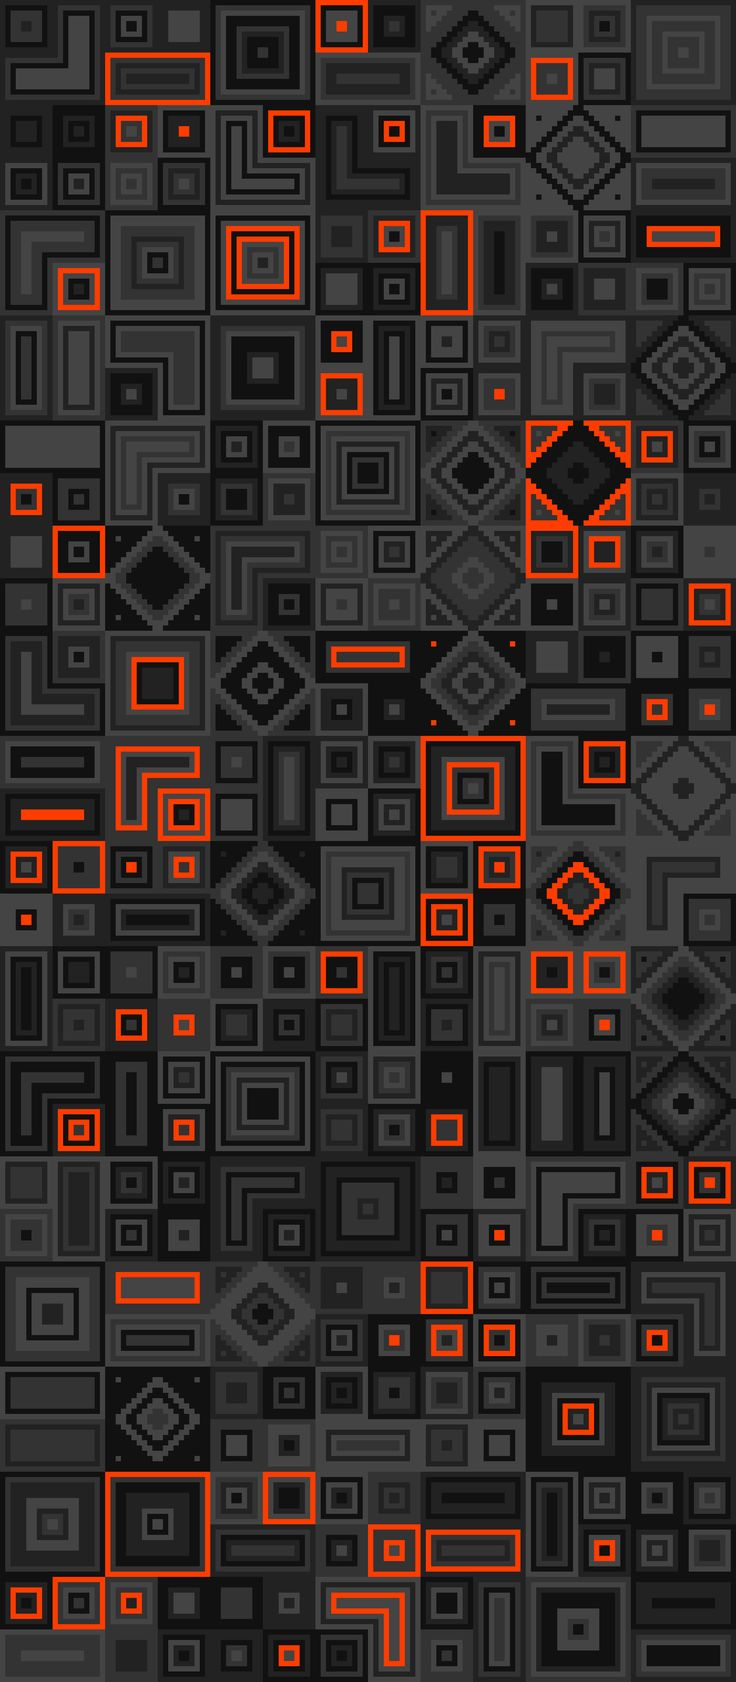 Russfussuk Reboot Geometric Pattern S6A #pattern #patterndesign #patternprint #geometric #computer #digital